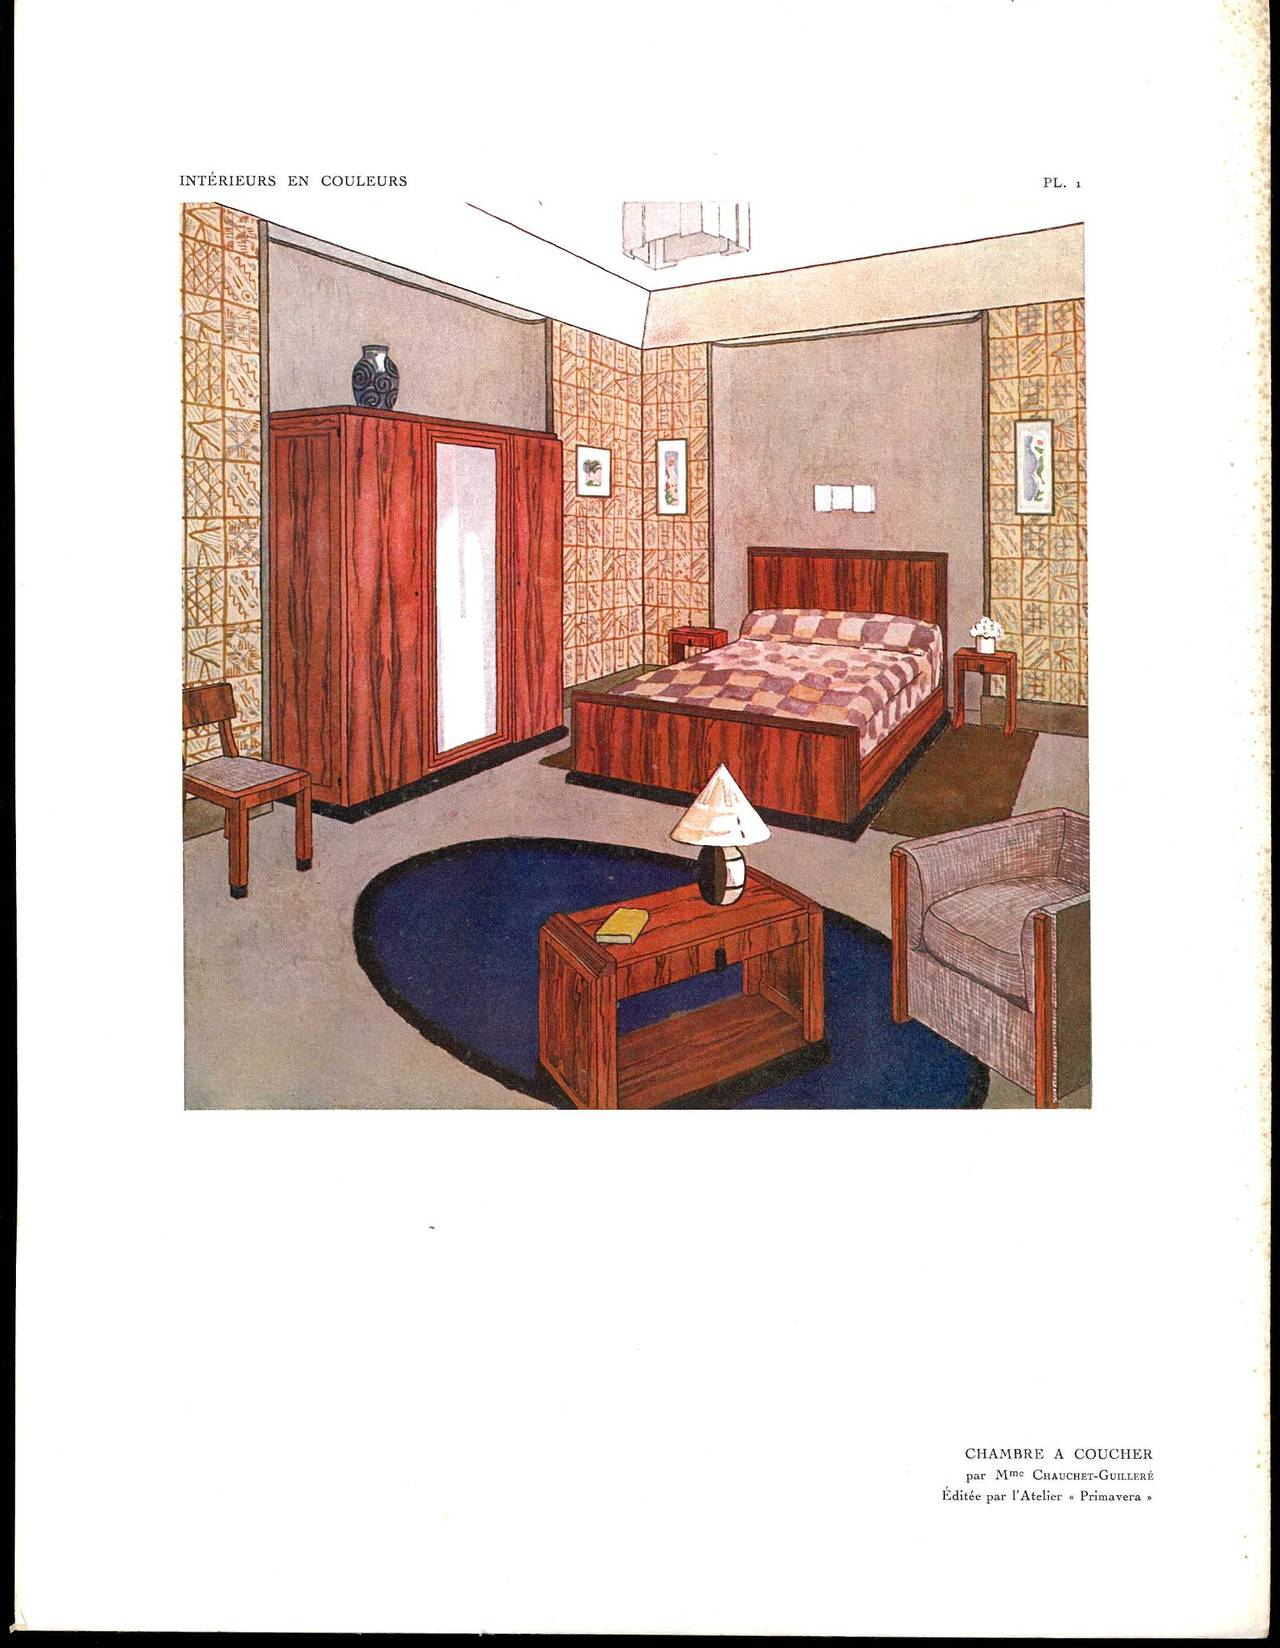 Published in 1926 this is a hard covered folio with 50 beautiful colour plates showing room interior designs by some of the great names from the Art Deco period who exhibited at the famous Paris Exposition of 1925. Plates includes a Bedroom by